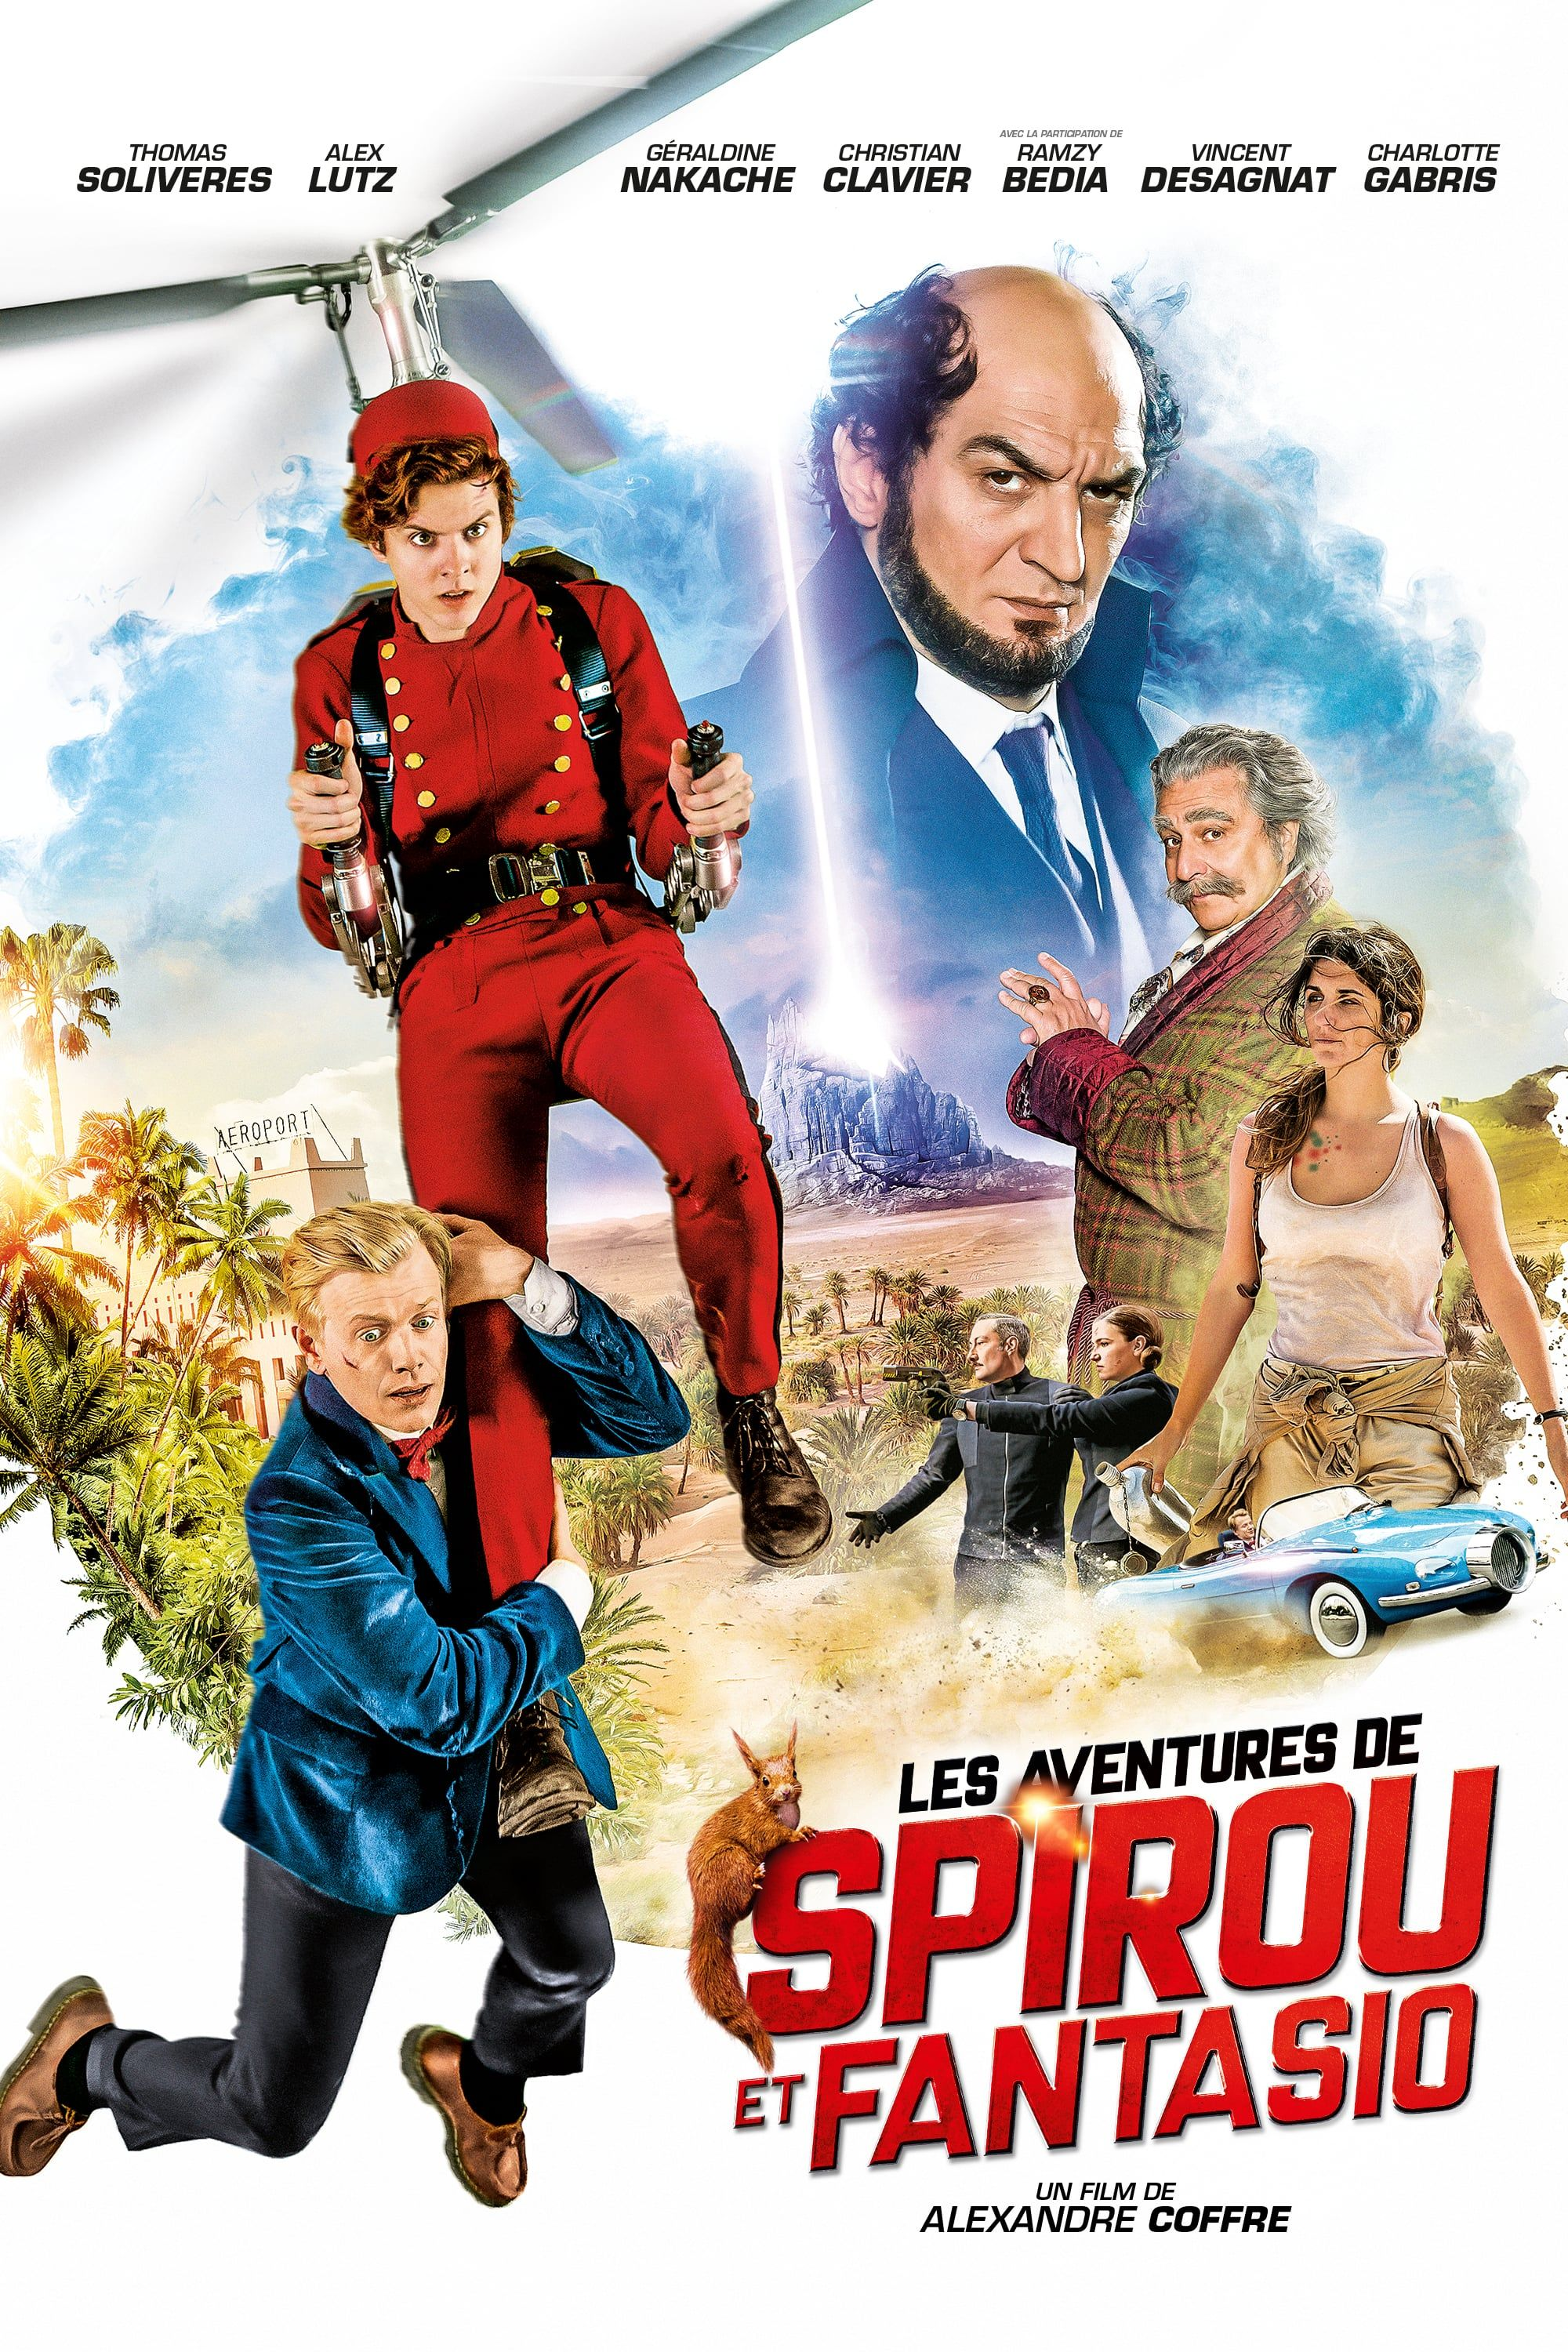 Spirou & Fantasio's Big Adventures FULL MOVIE HD1080p Sub English Play For  FREE